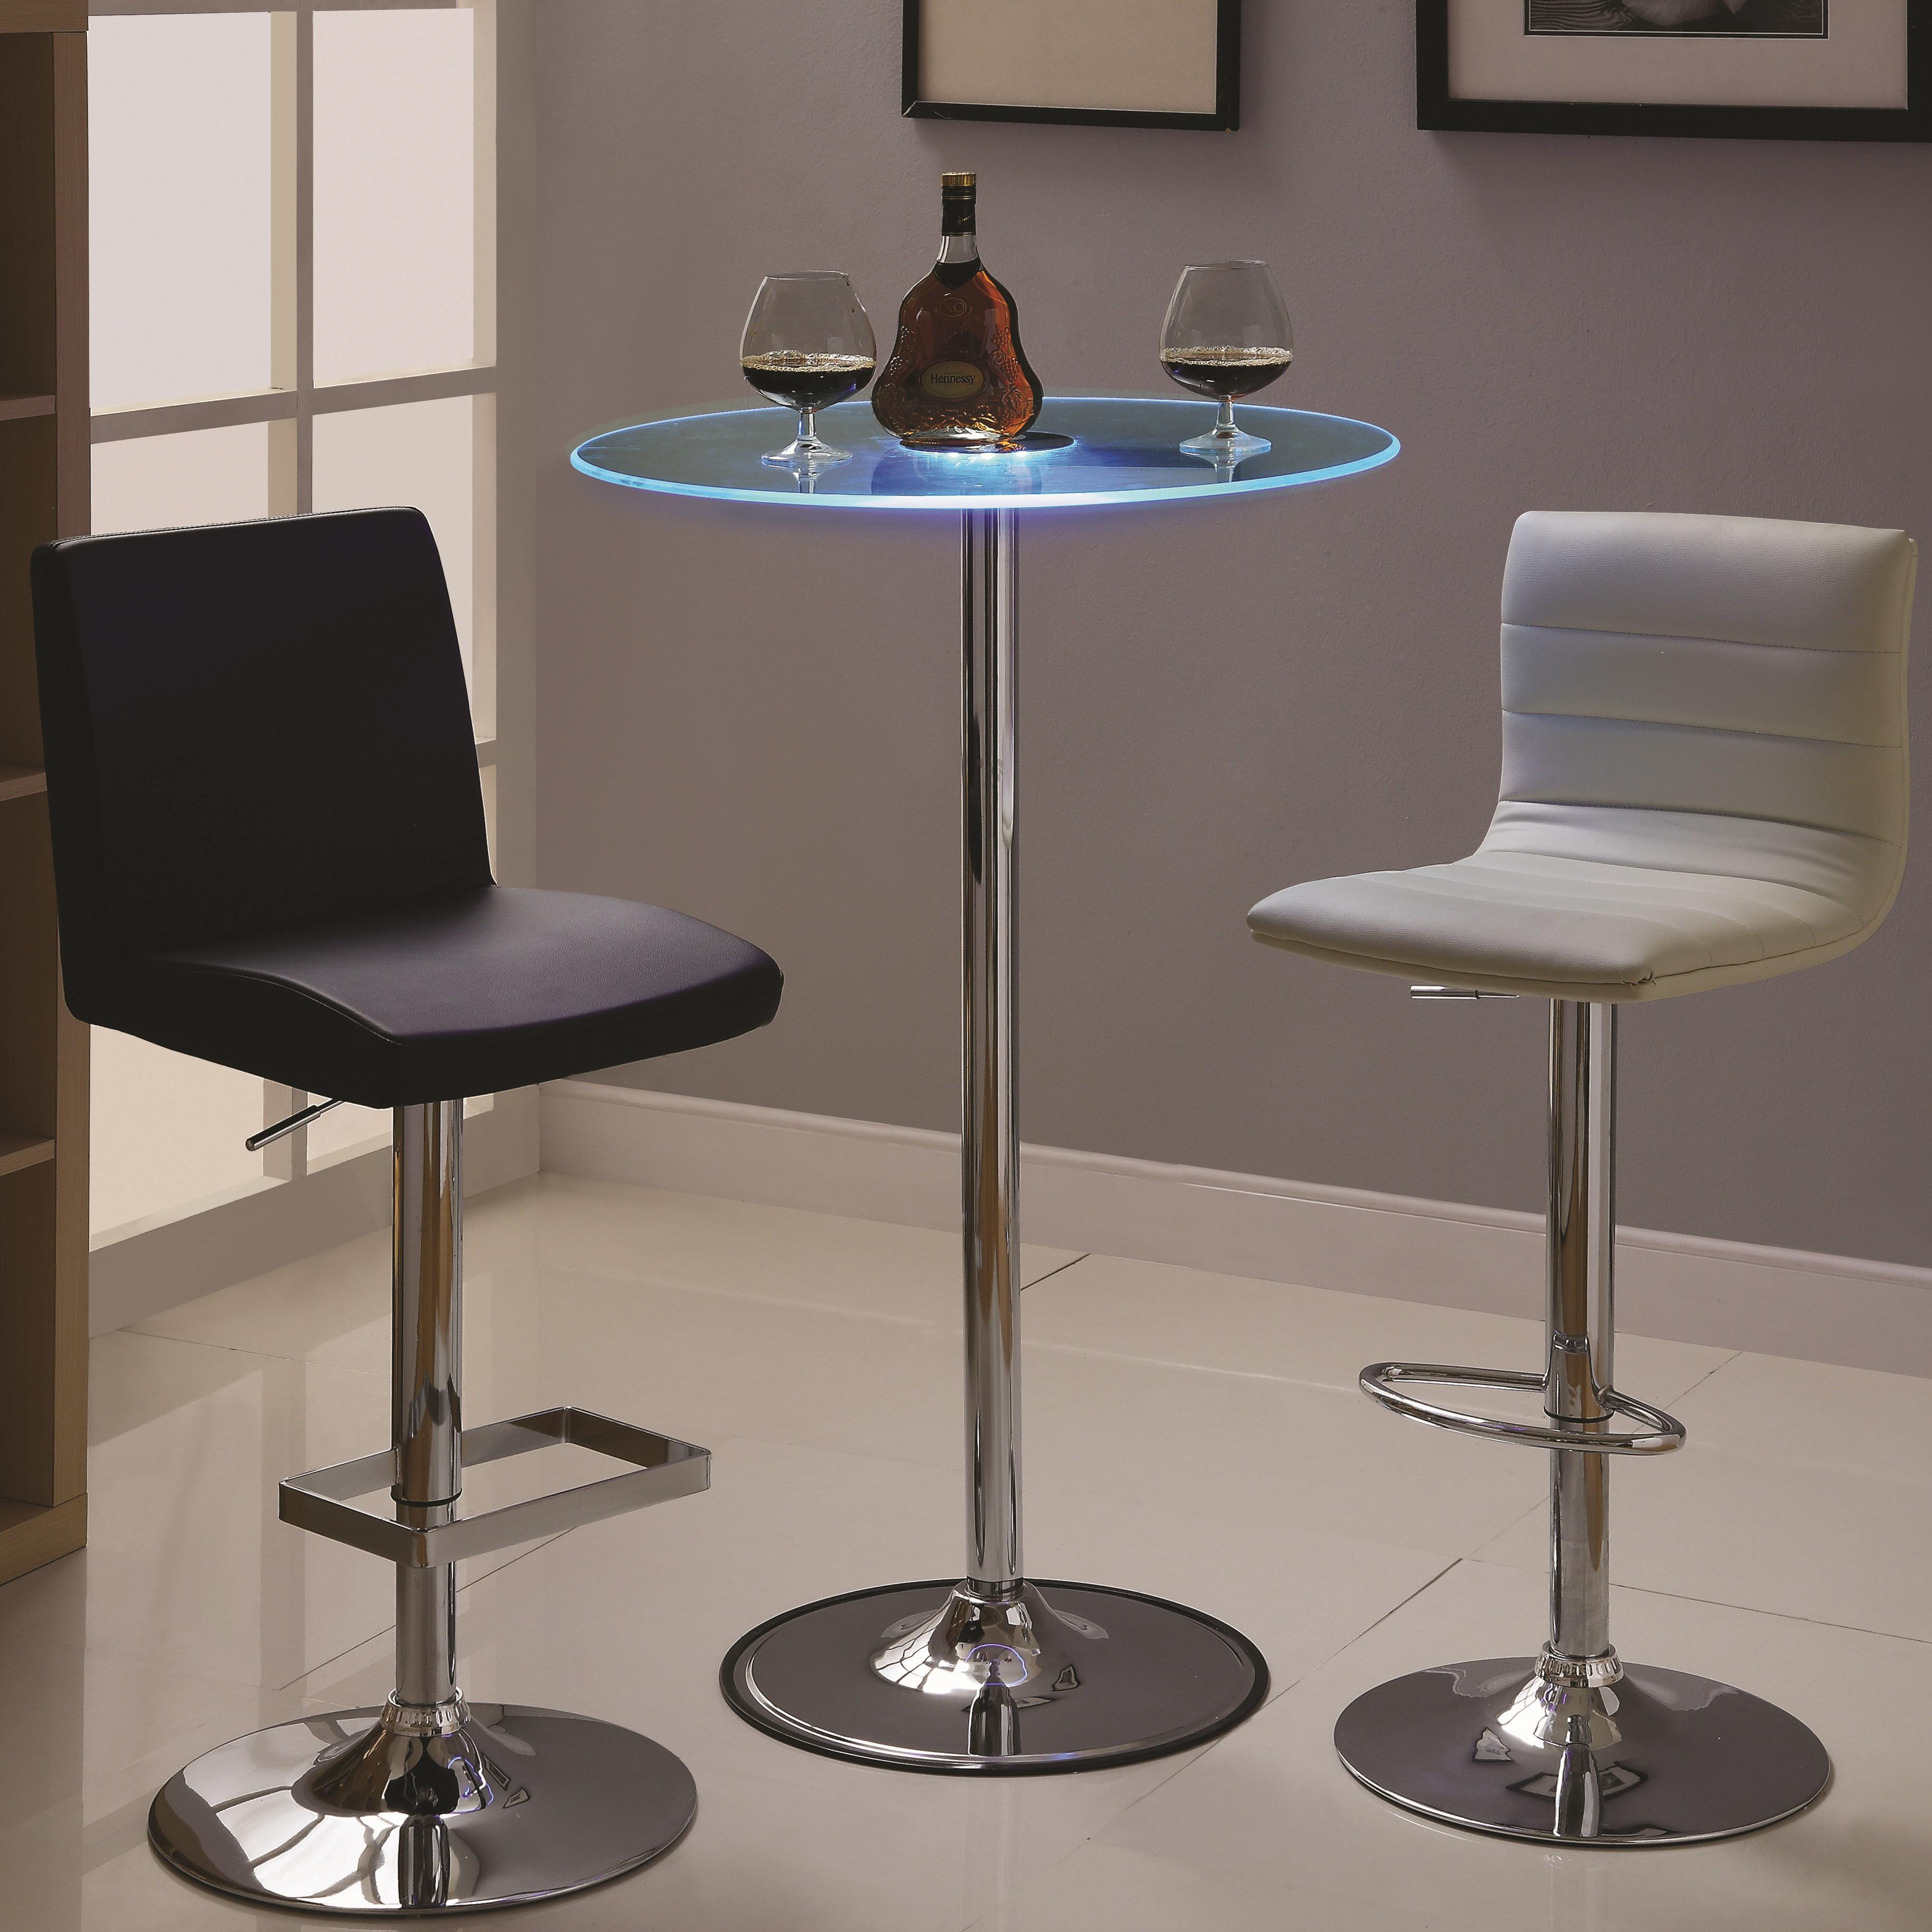 42 Transitioning LED Bar Table with Chrome Base by  : products2Fcoaster2Fcolor2Fled20 20 181734809122400 b3 from www.wolffurniture.com size 3664 x 3664 jpeg 784kB